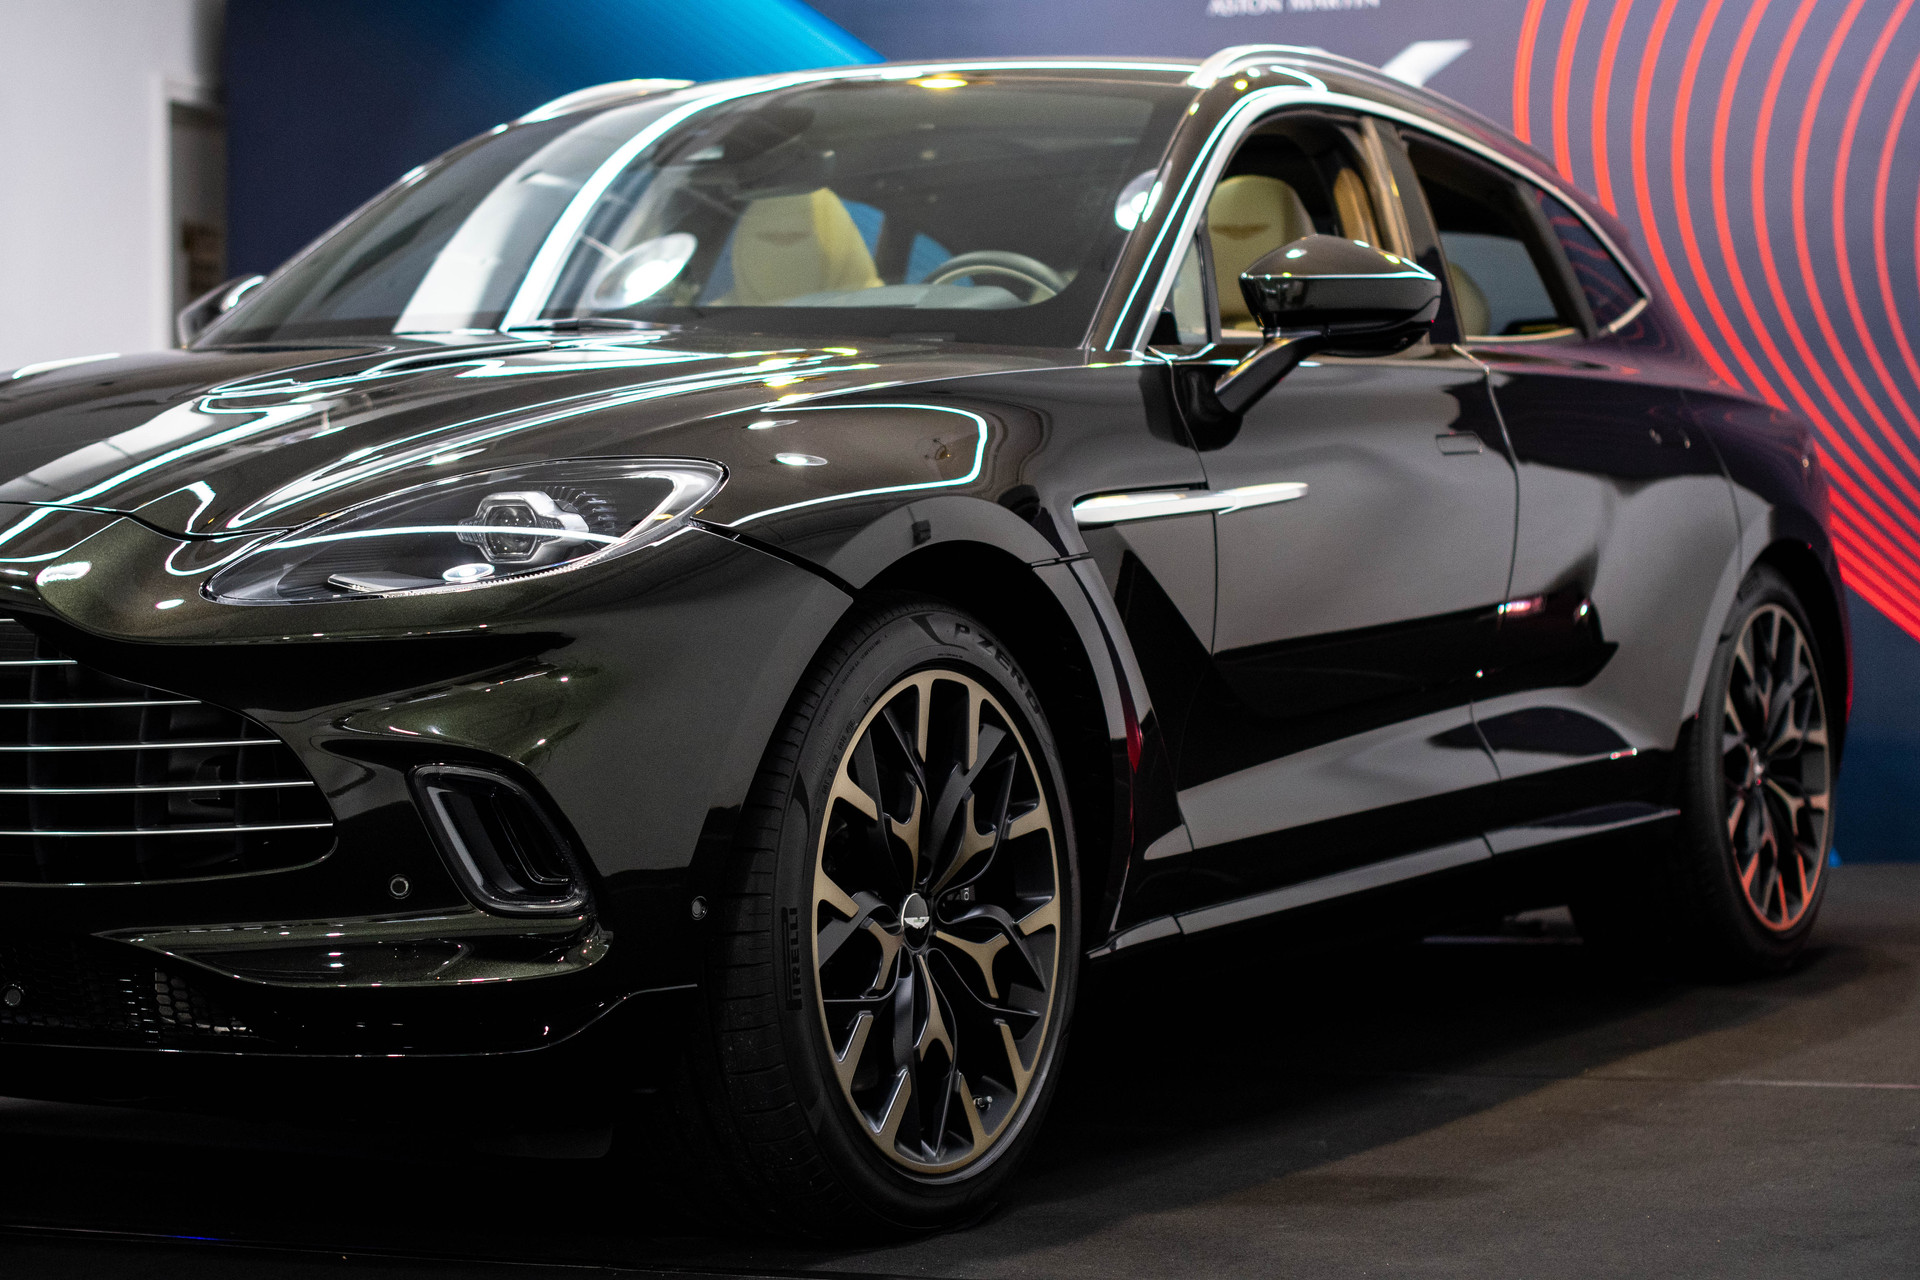 Side angle view of Aston Martin DBX in Hong Kong event